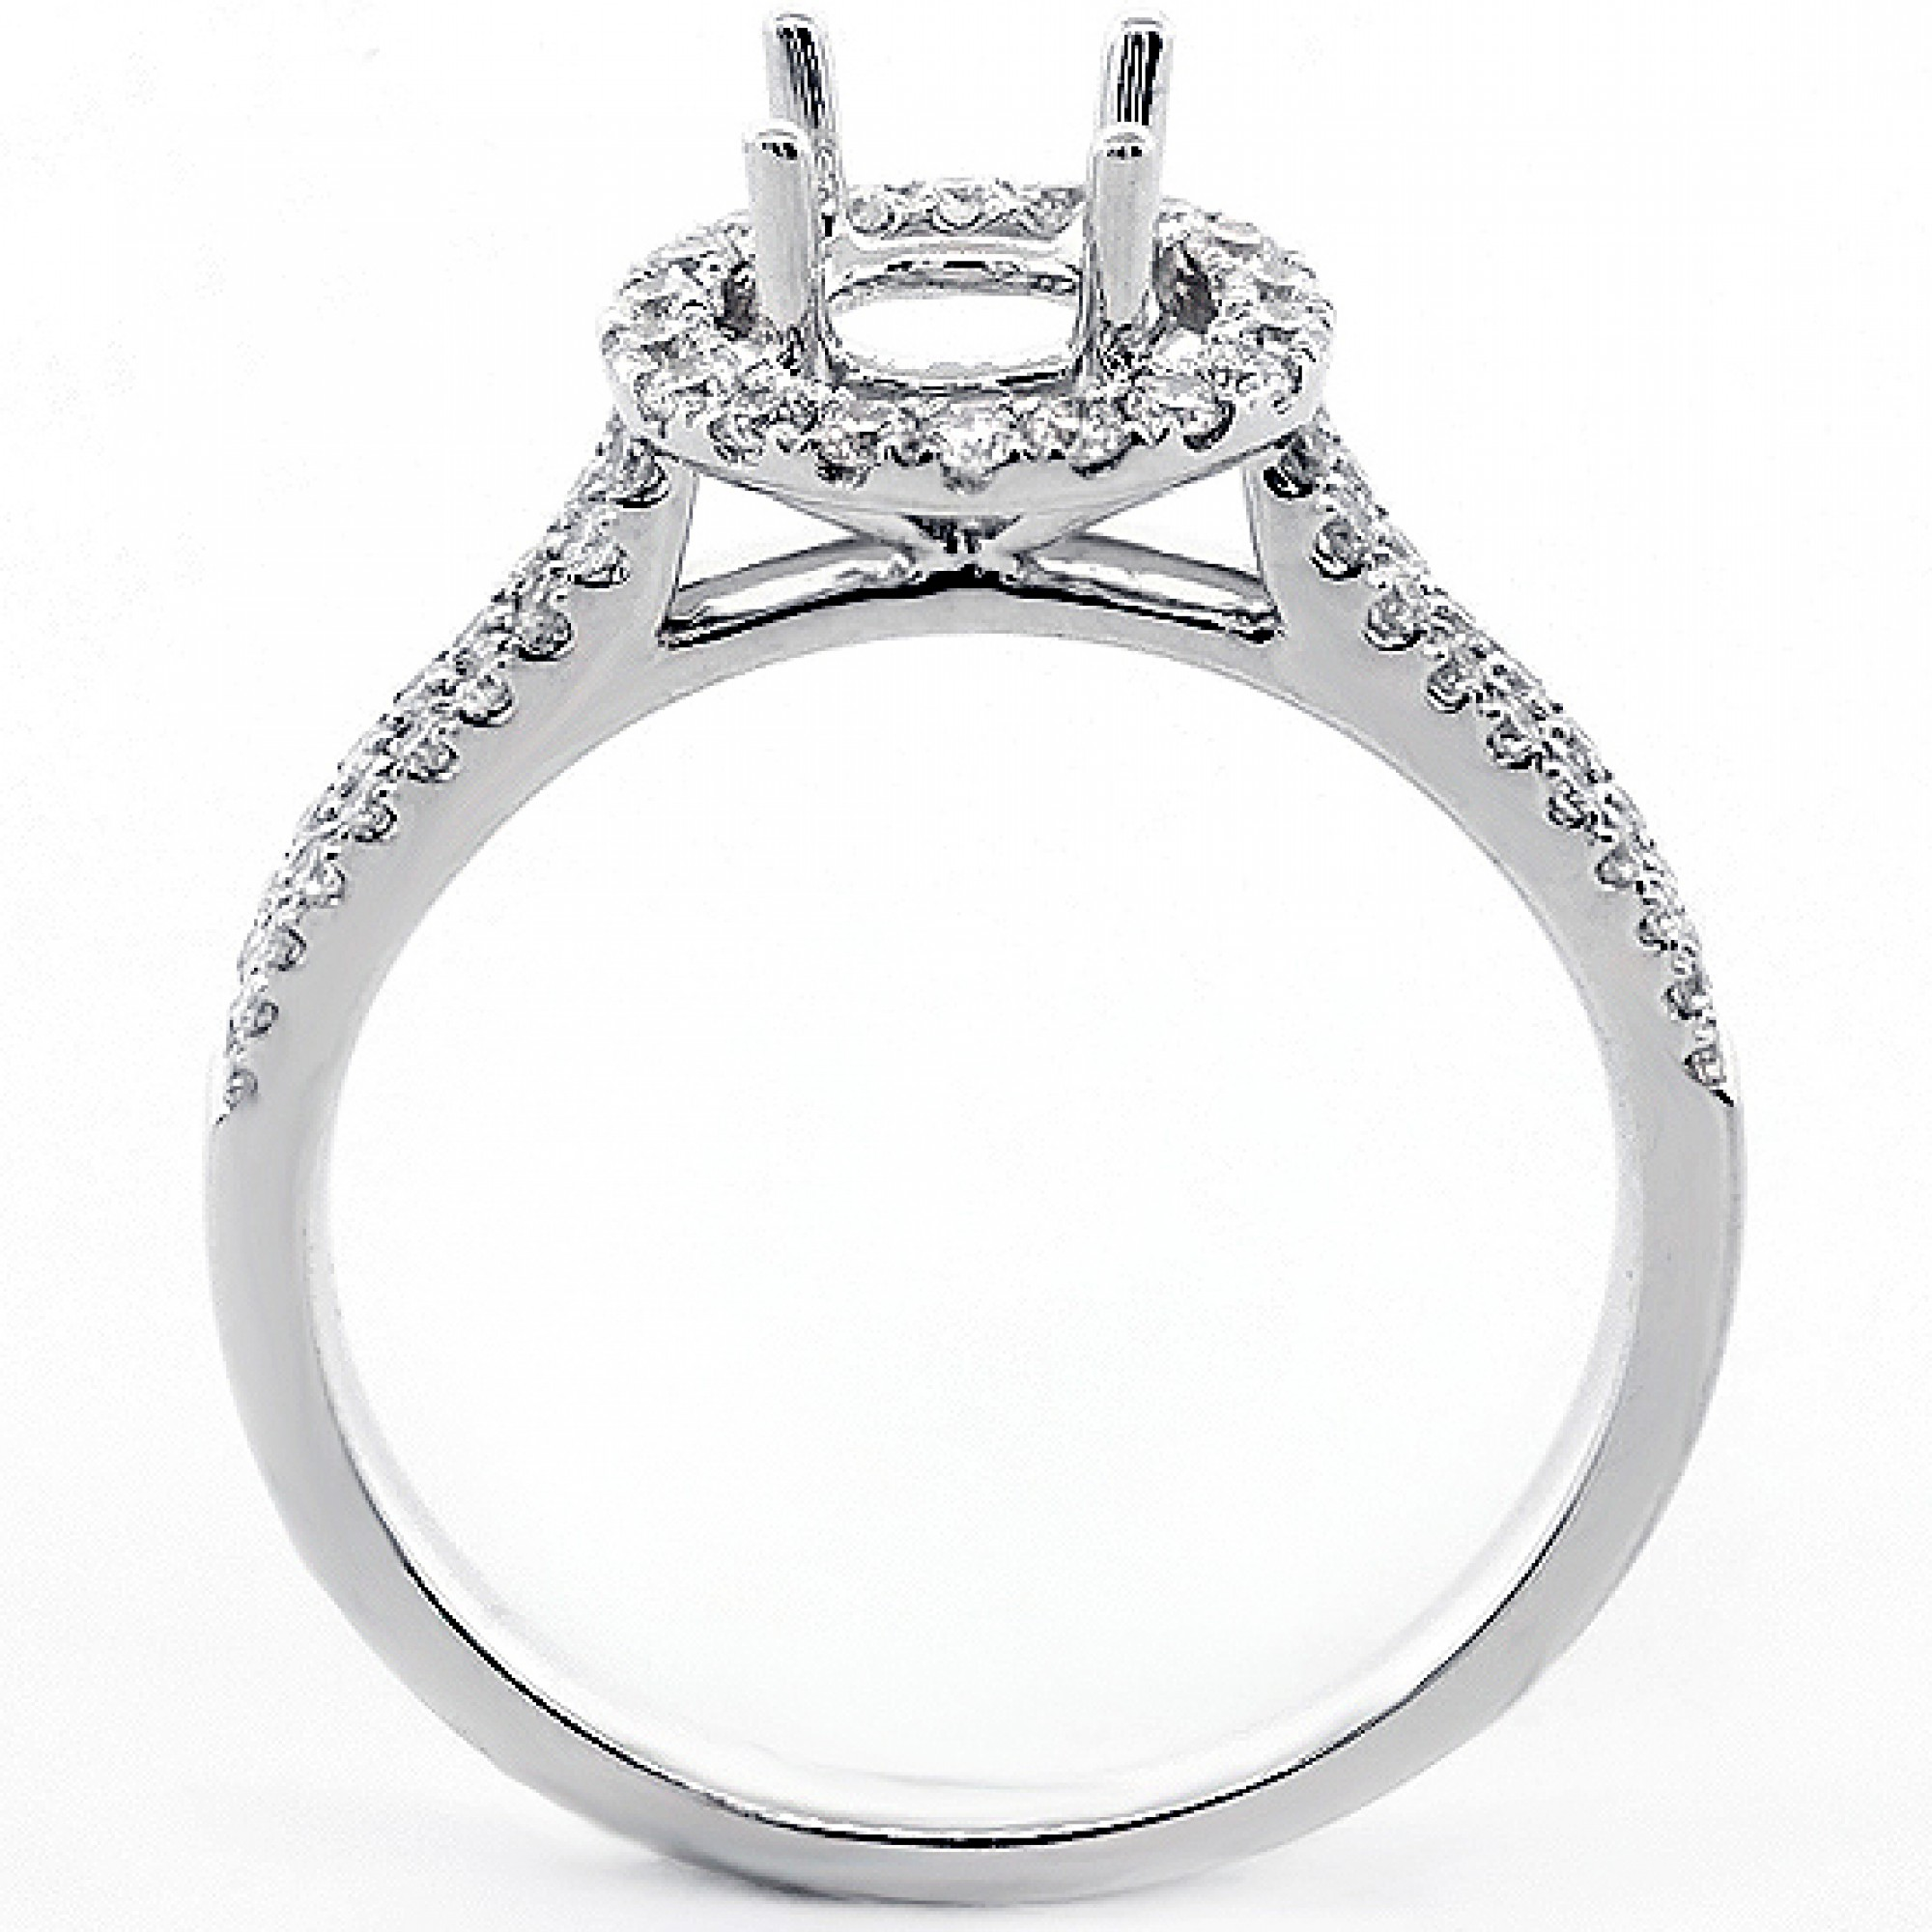 0.43 Cts Round Cut Diamond Halo Engagement Ring Setting ...